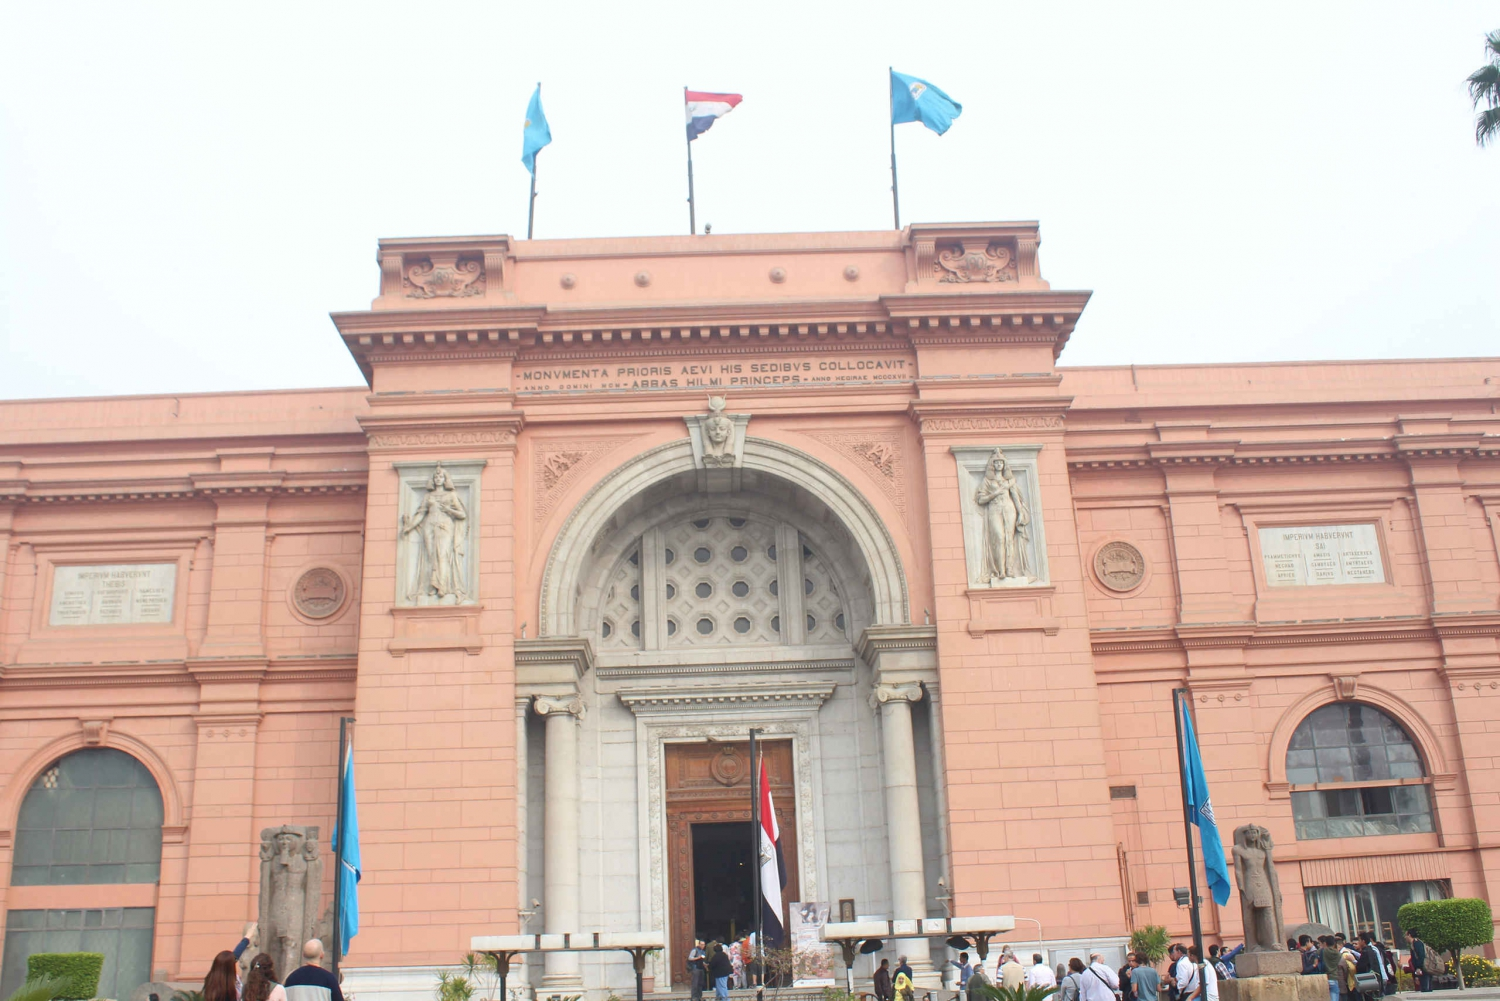 Egyptian Museum of Antiquities Entrance Ticket